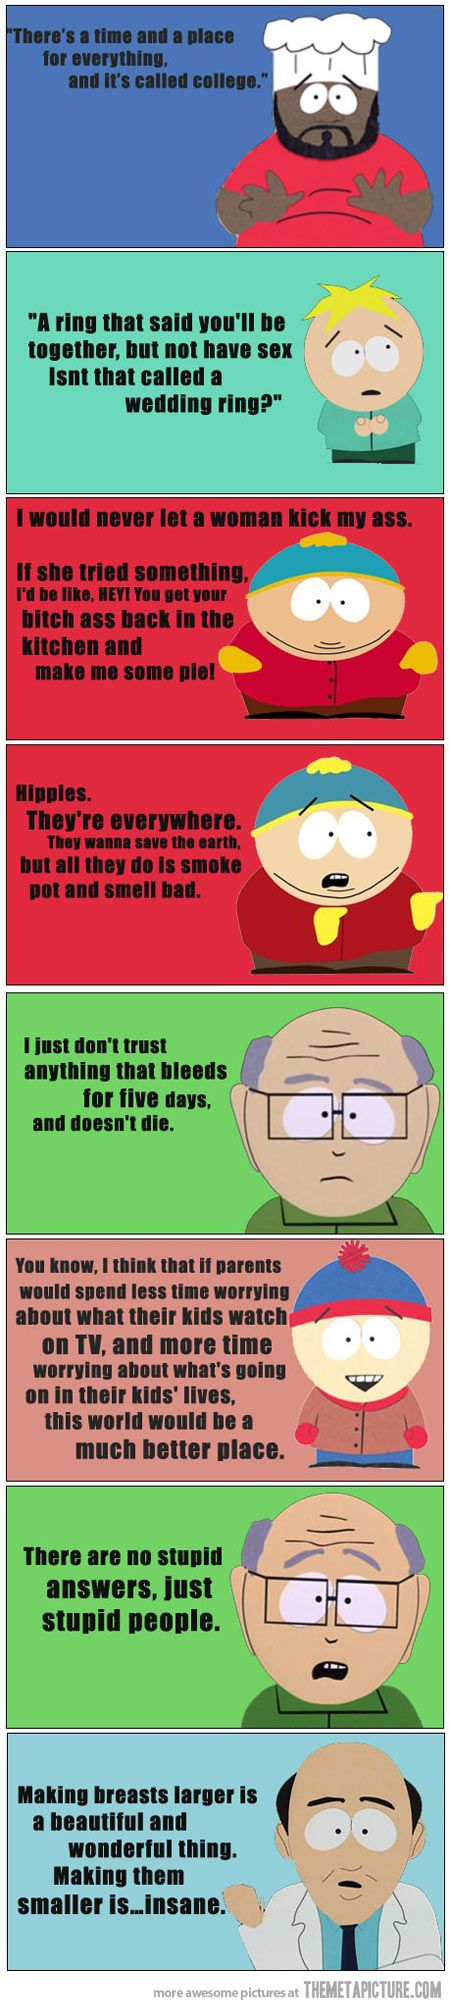 "My favorite: ""I don't trust anything that bleeds for five days and doesnt die."" lmao!"